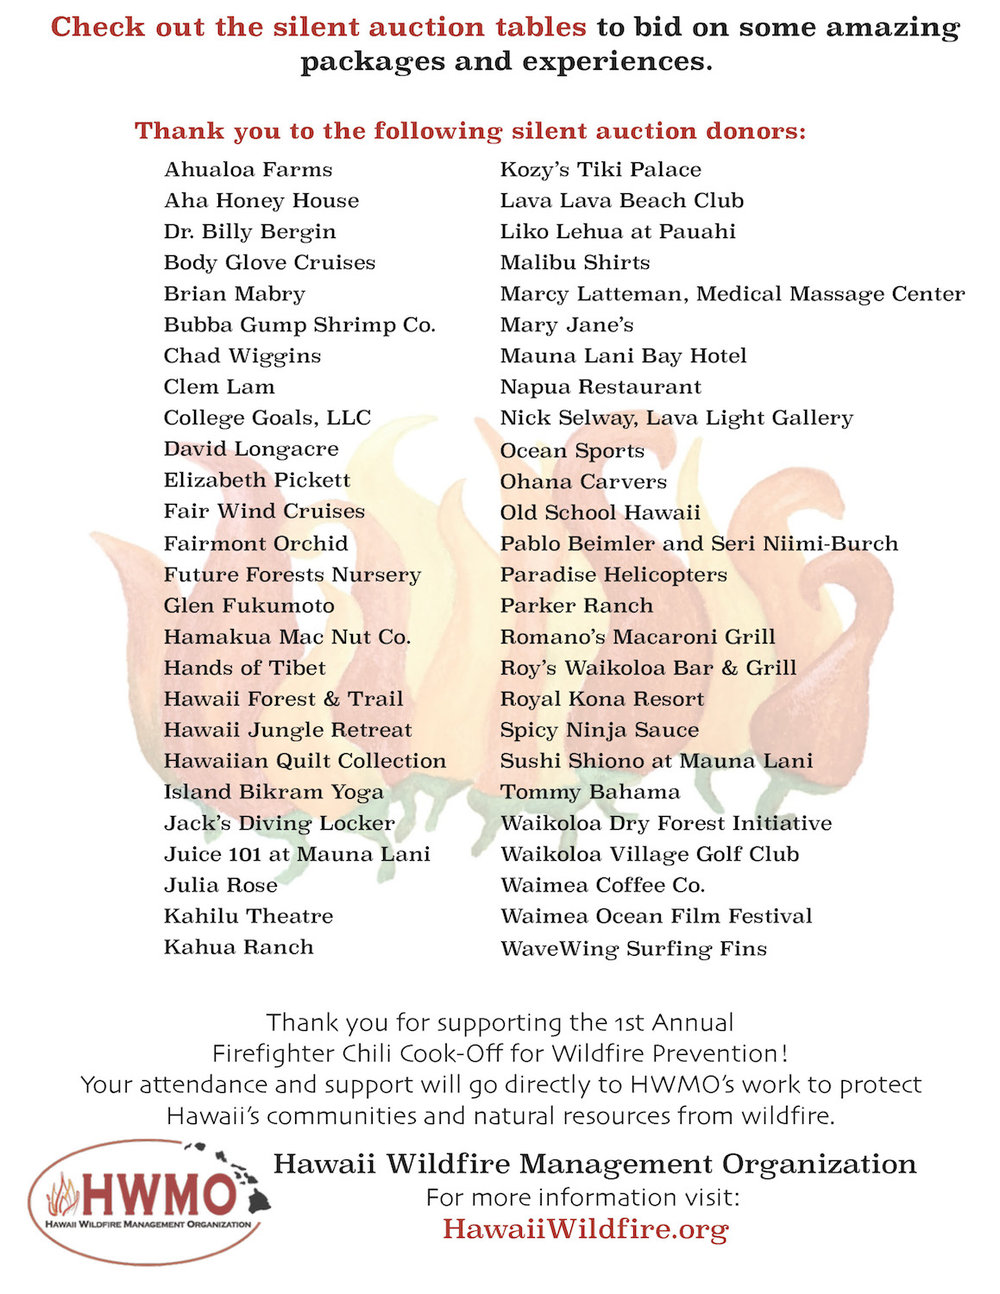 FINAL Program 2017 Firefighter Chili Cook-Off_Page_1.jpg